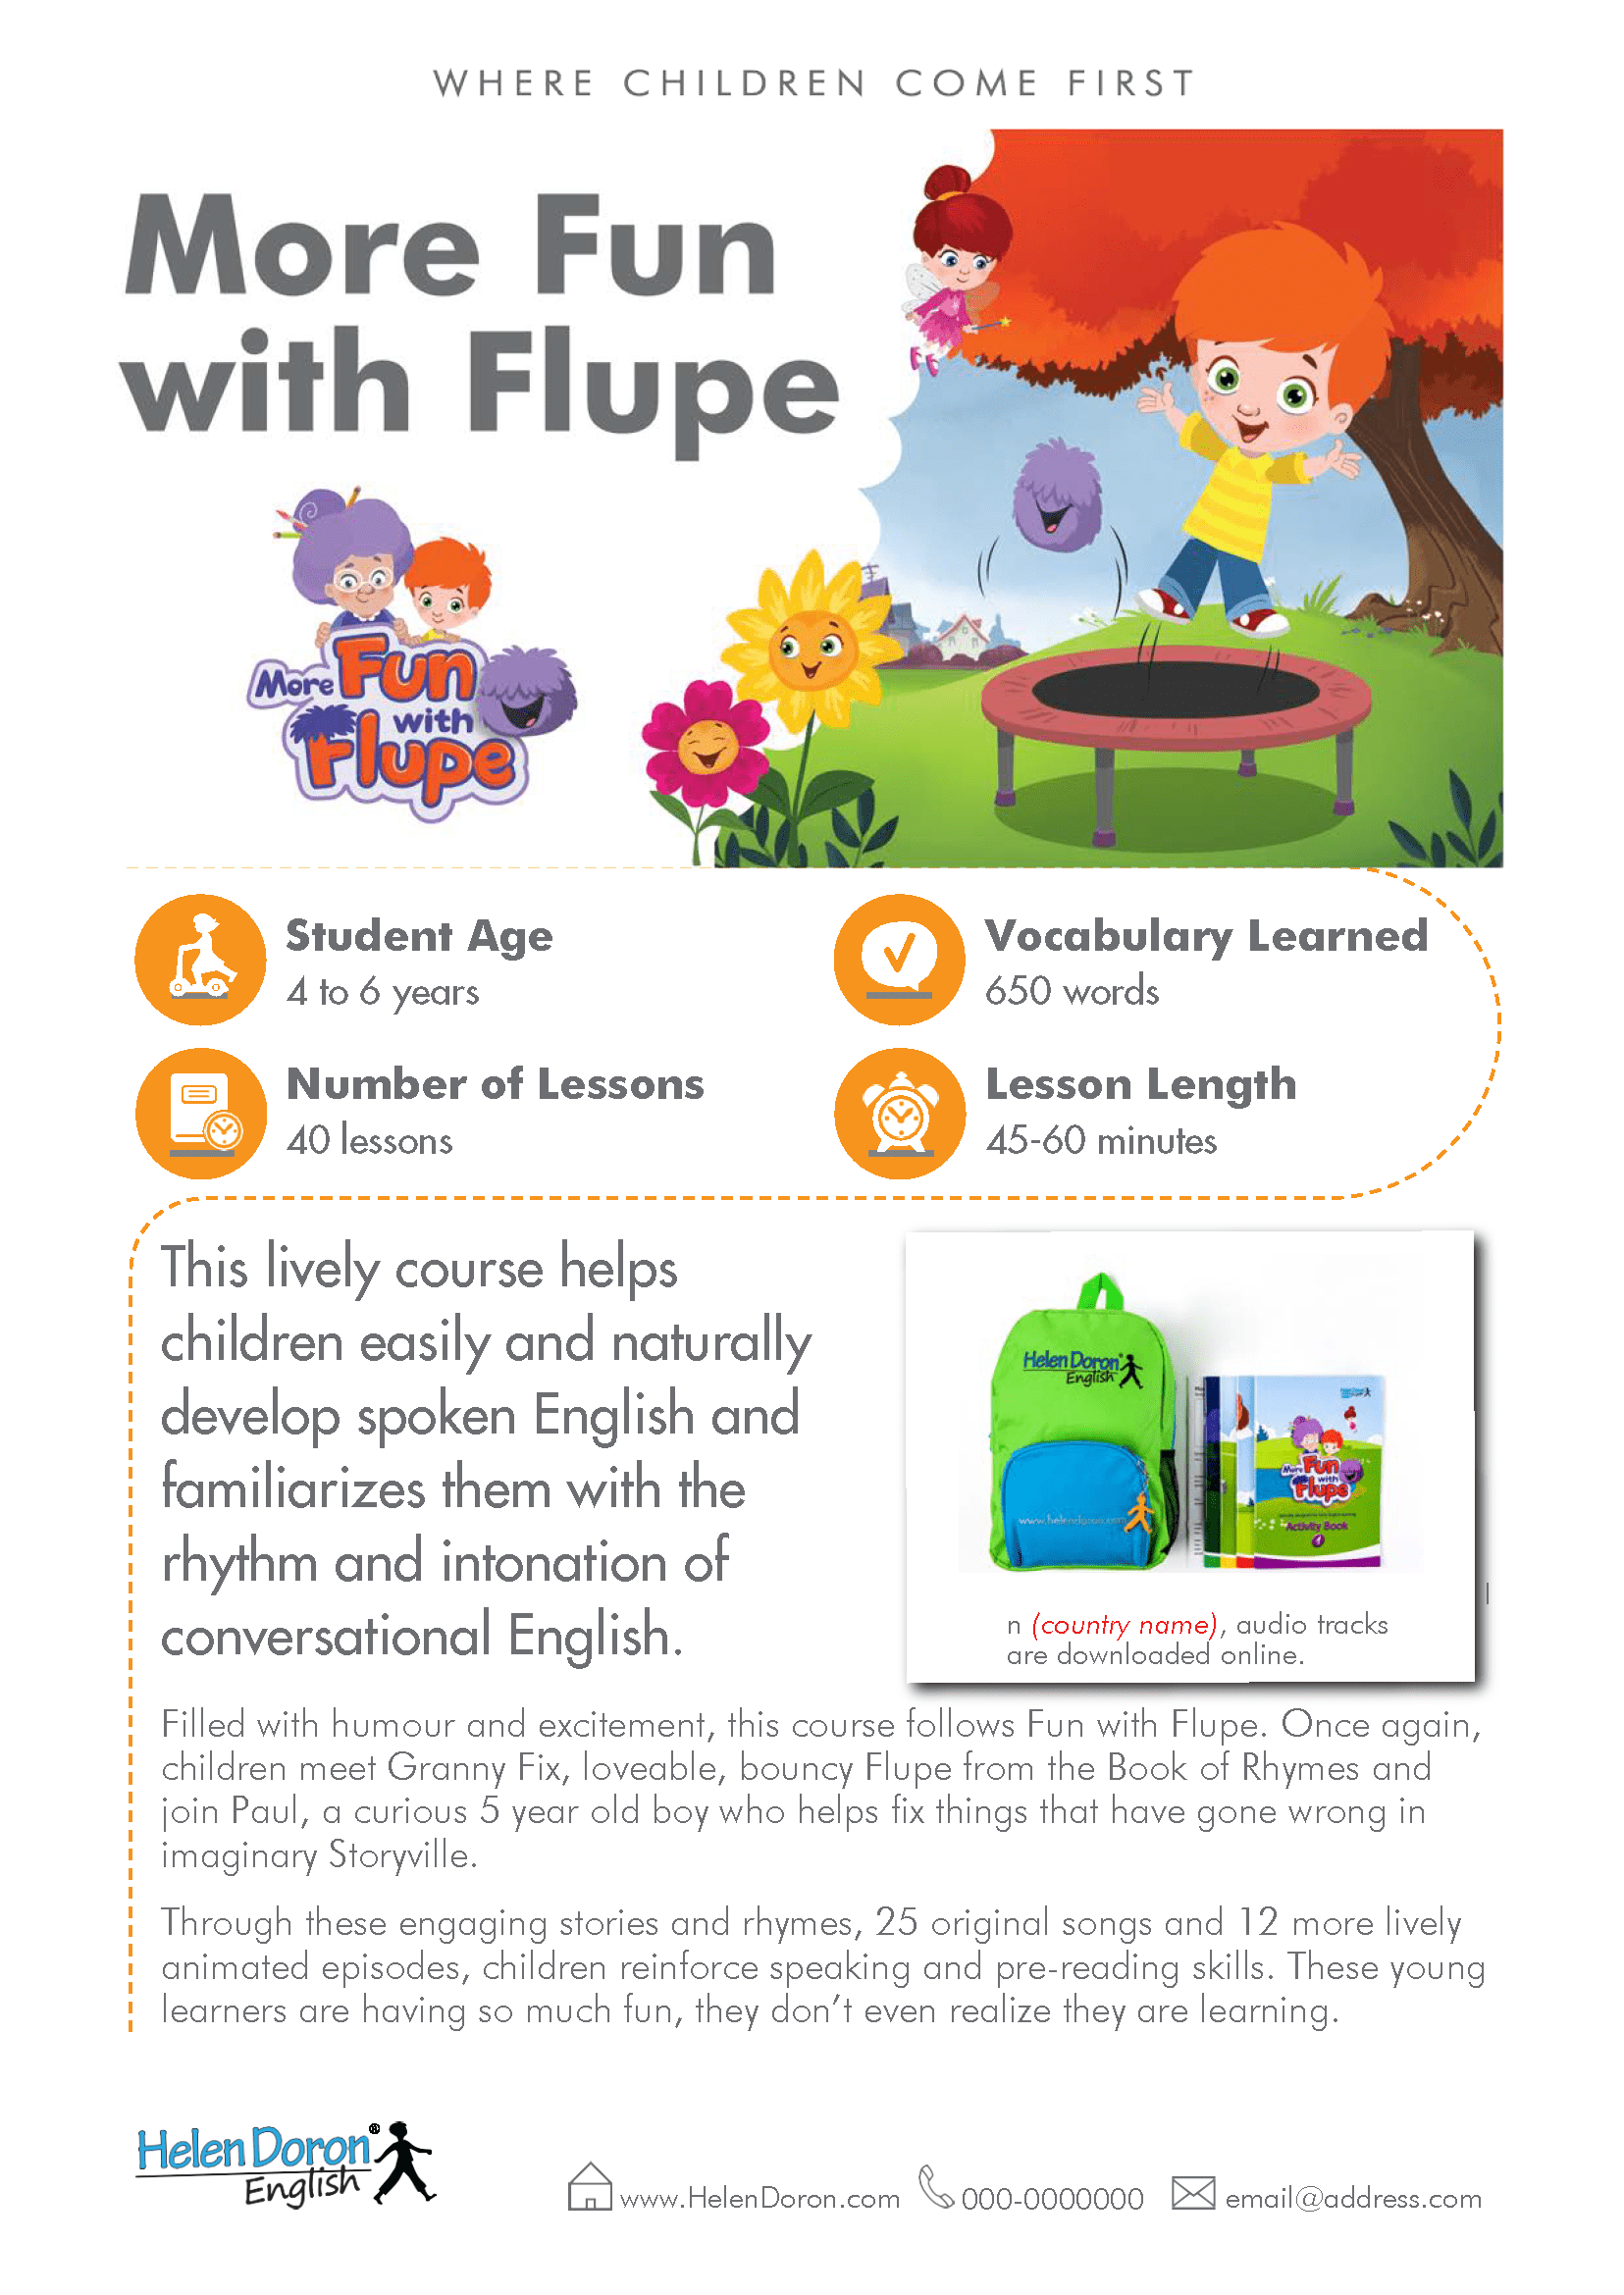 Download - More Fun with Flupe